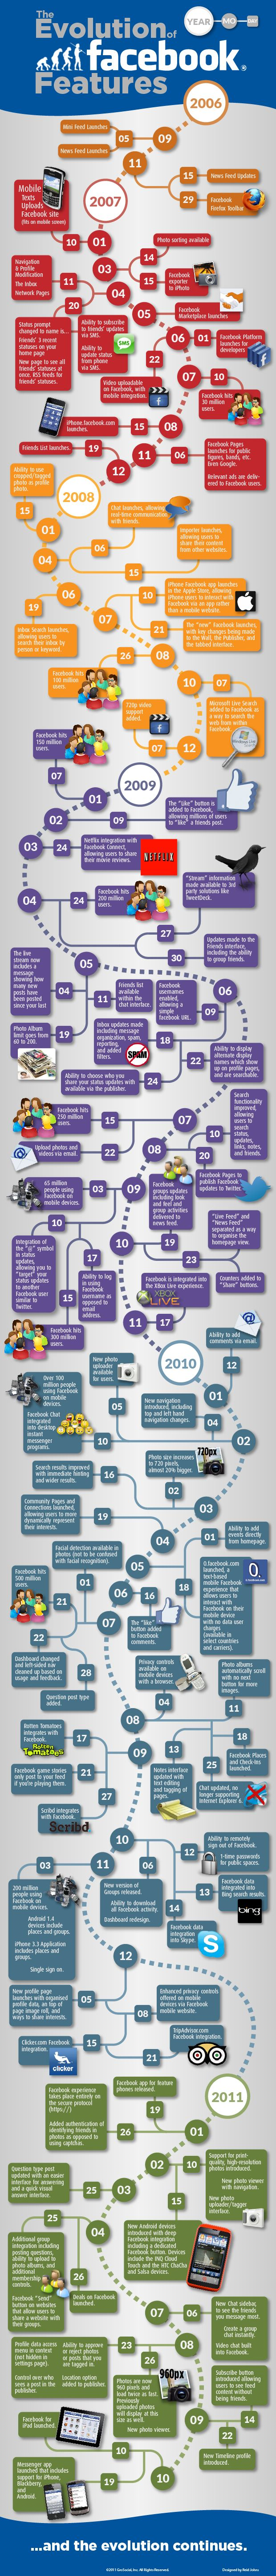 The Evolution of Facebook Features #infographic #socialmedia #in